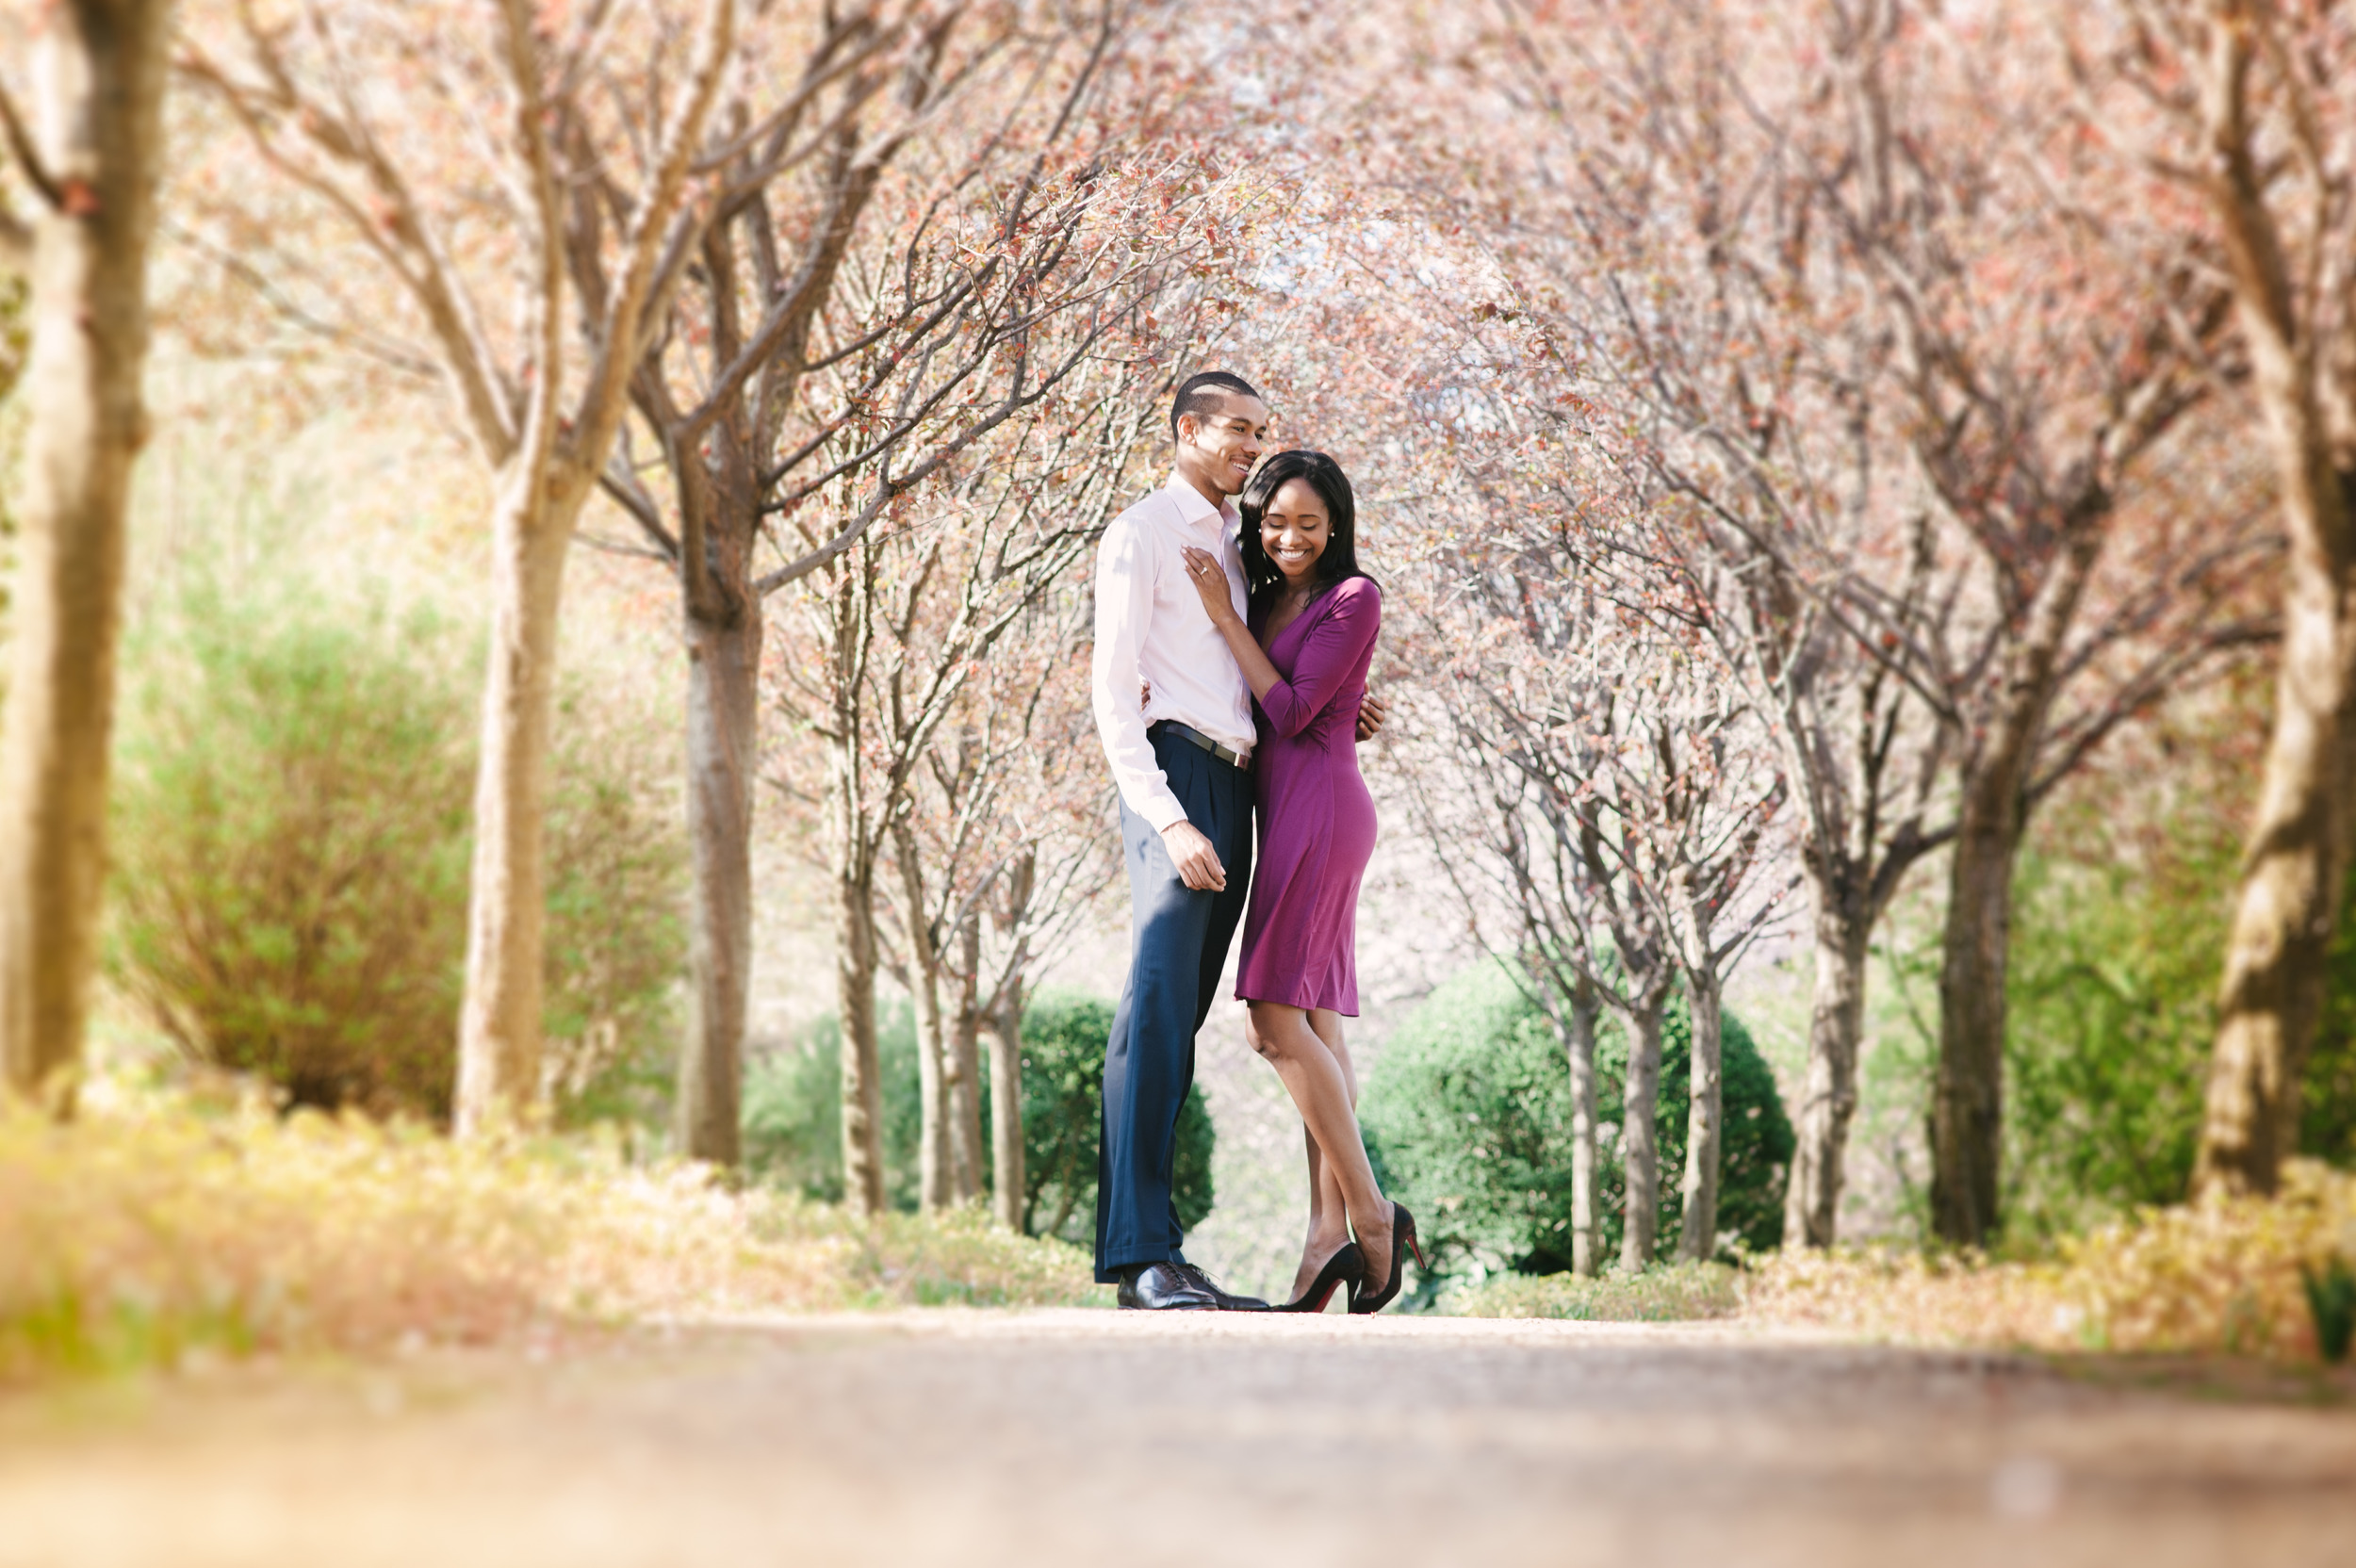 Engagement session in  Dumbarton Oaks Garden by Mantas Kubilinskas-2.jpg